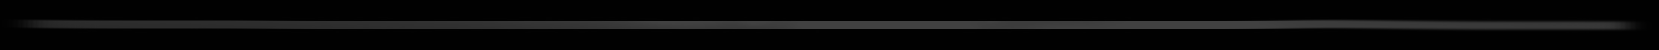 Web Line Horizontal dimmer.png